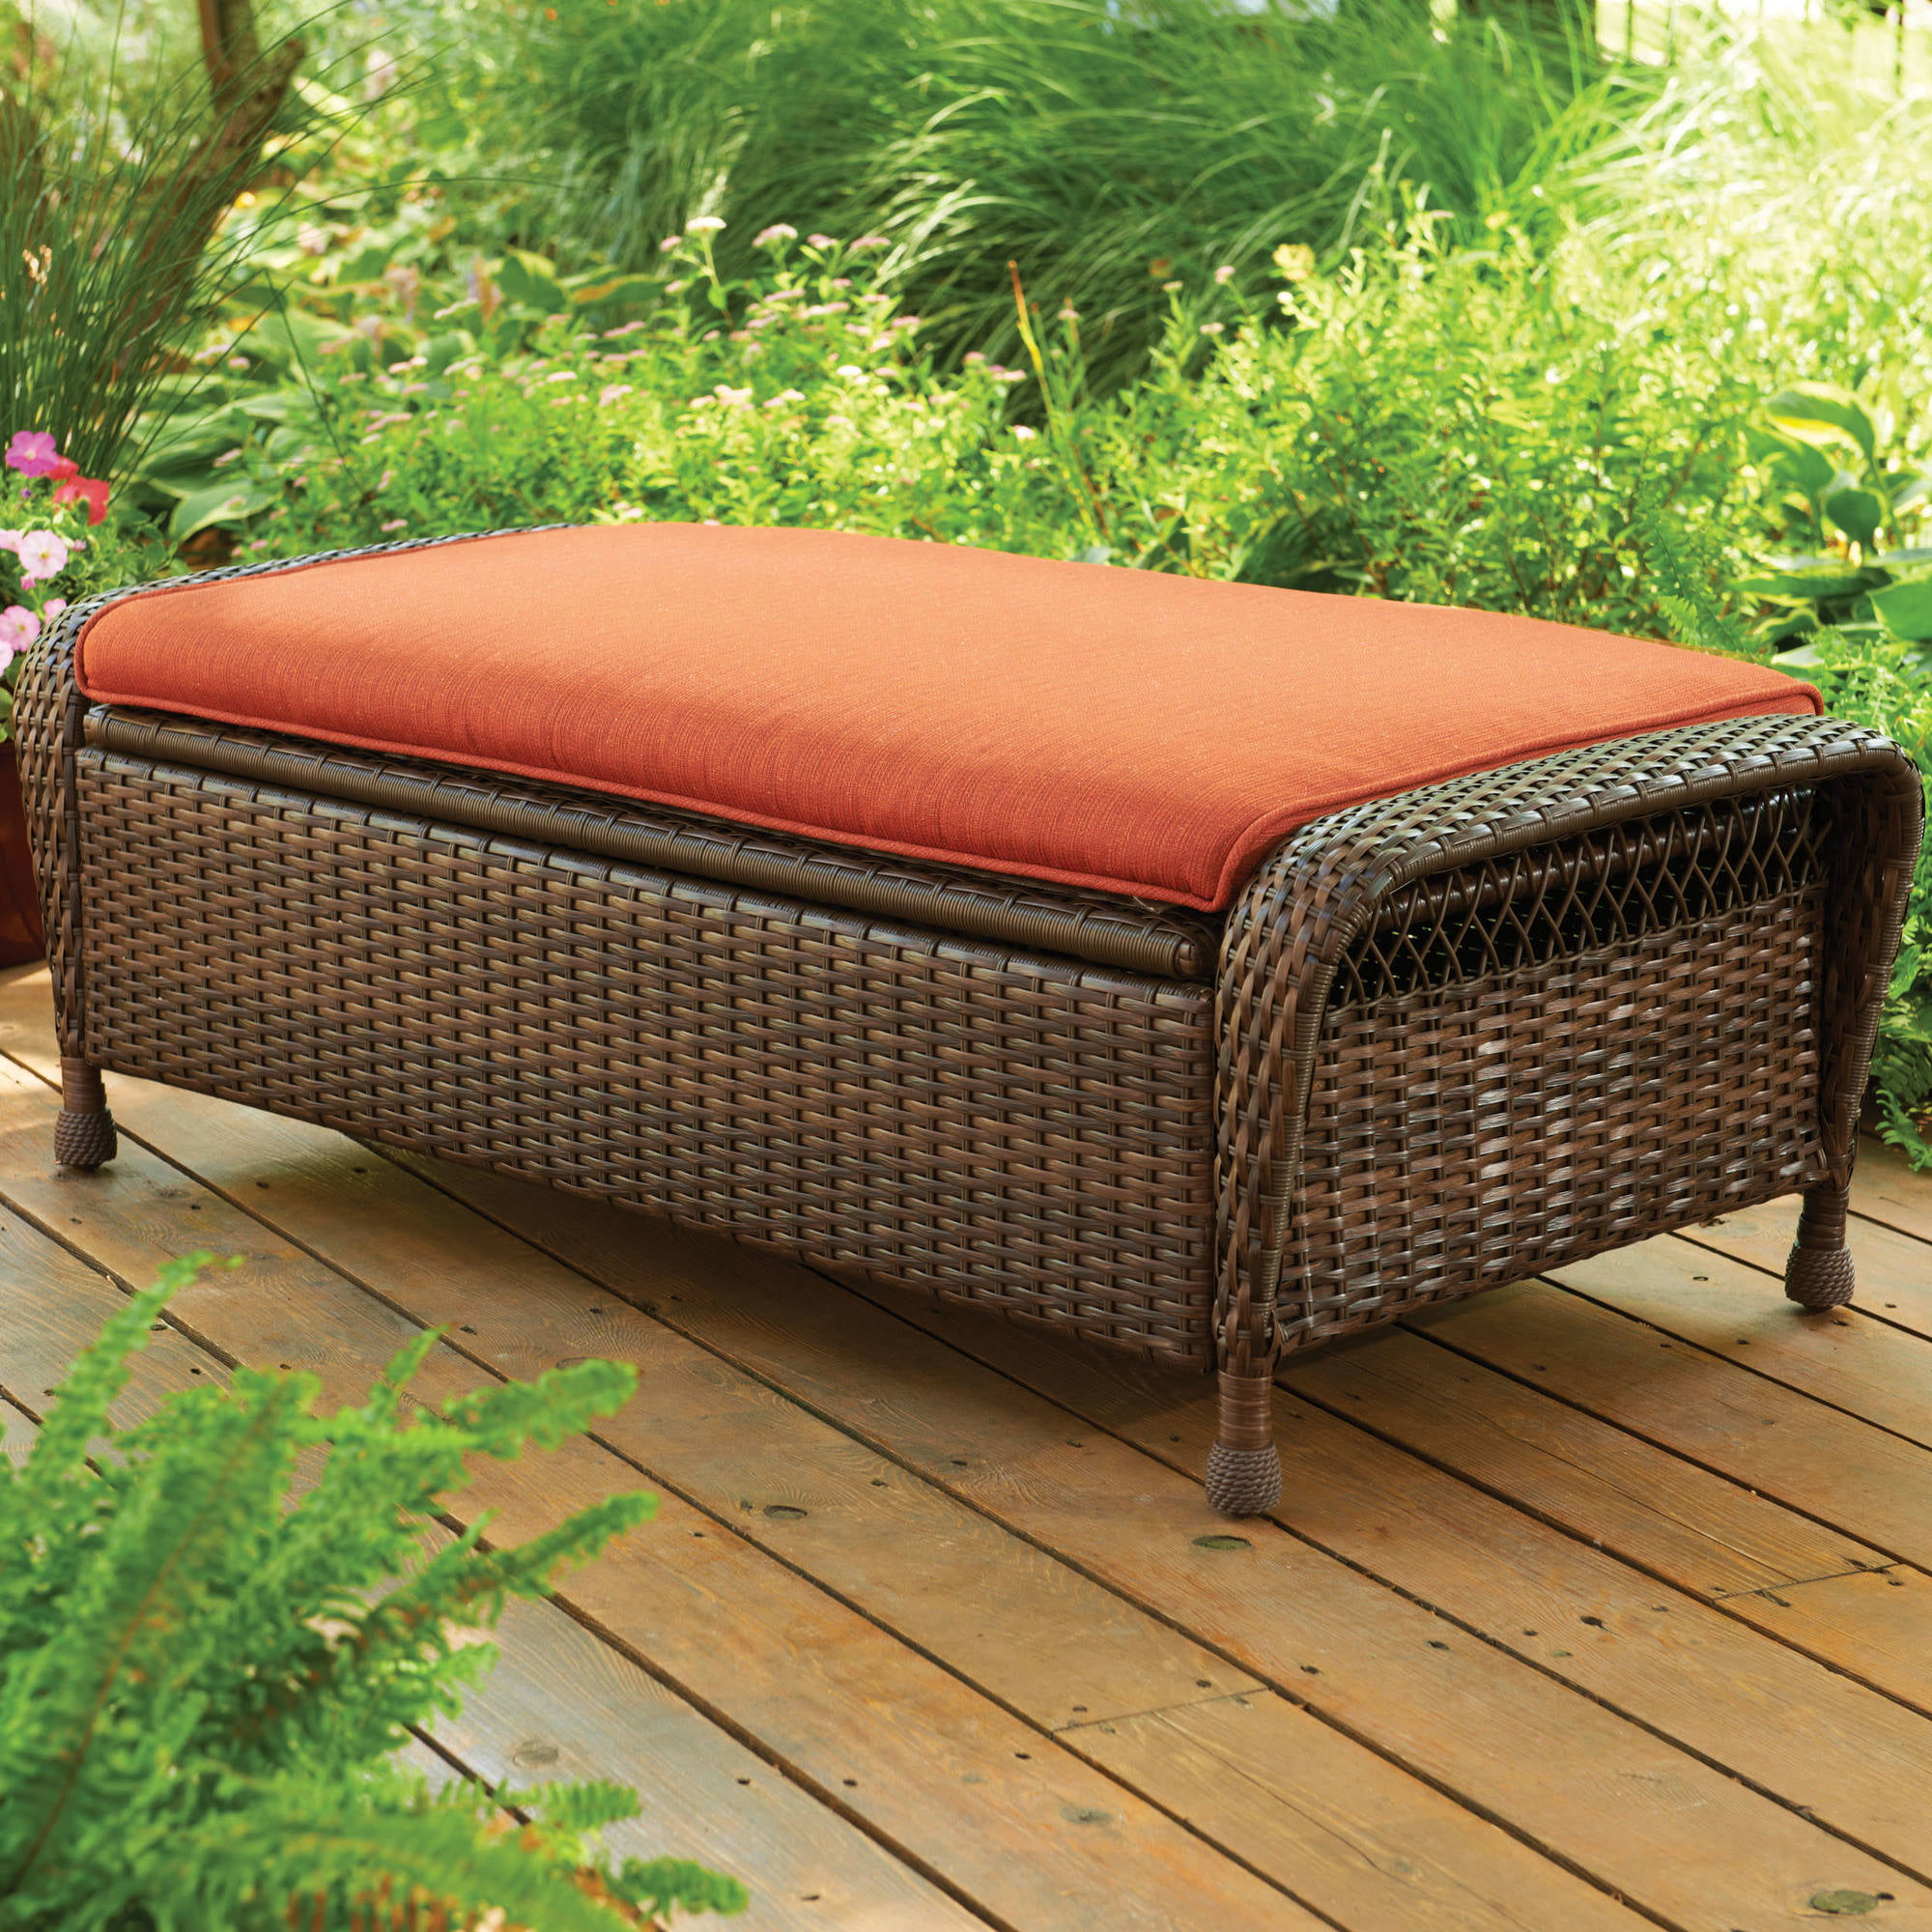 Awe Inspiring Better Homes And Gardens Azalea Ridge Outdoor Storage Ottoman Walmart Com Creativecarmelina Interior Chair Design Creativecarmelinacom